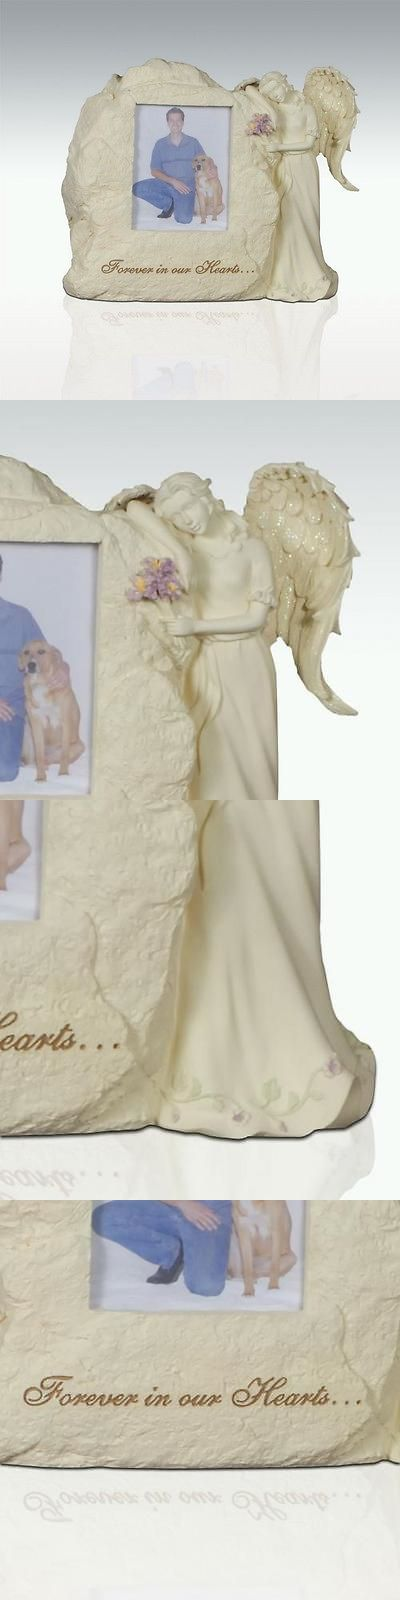 Pet Memorials and Urns 116391: Perfect Memorials Forever In Our Hearts Angel With Picture Pet Cremation Urn BUY IT NOW ONLY: $69.95